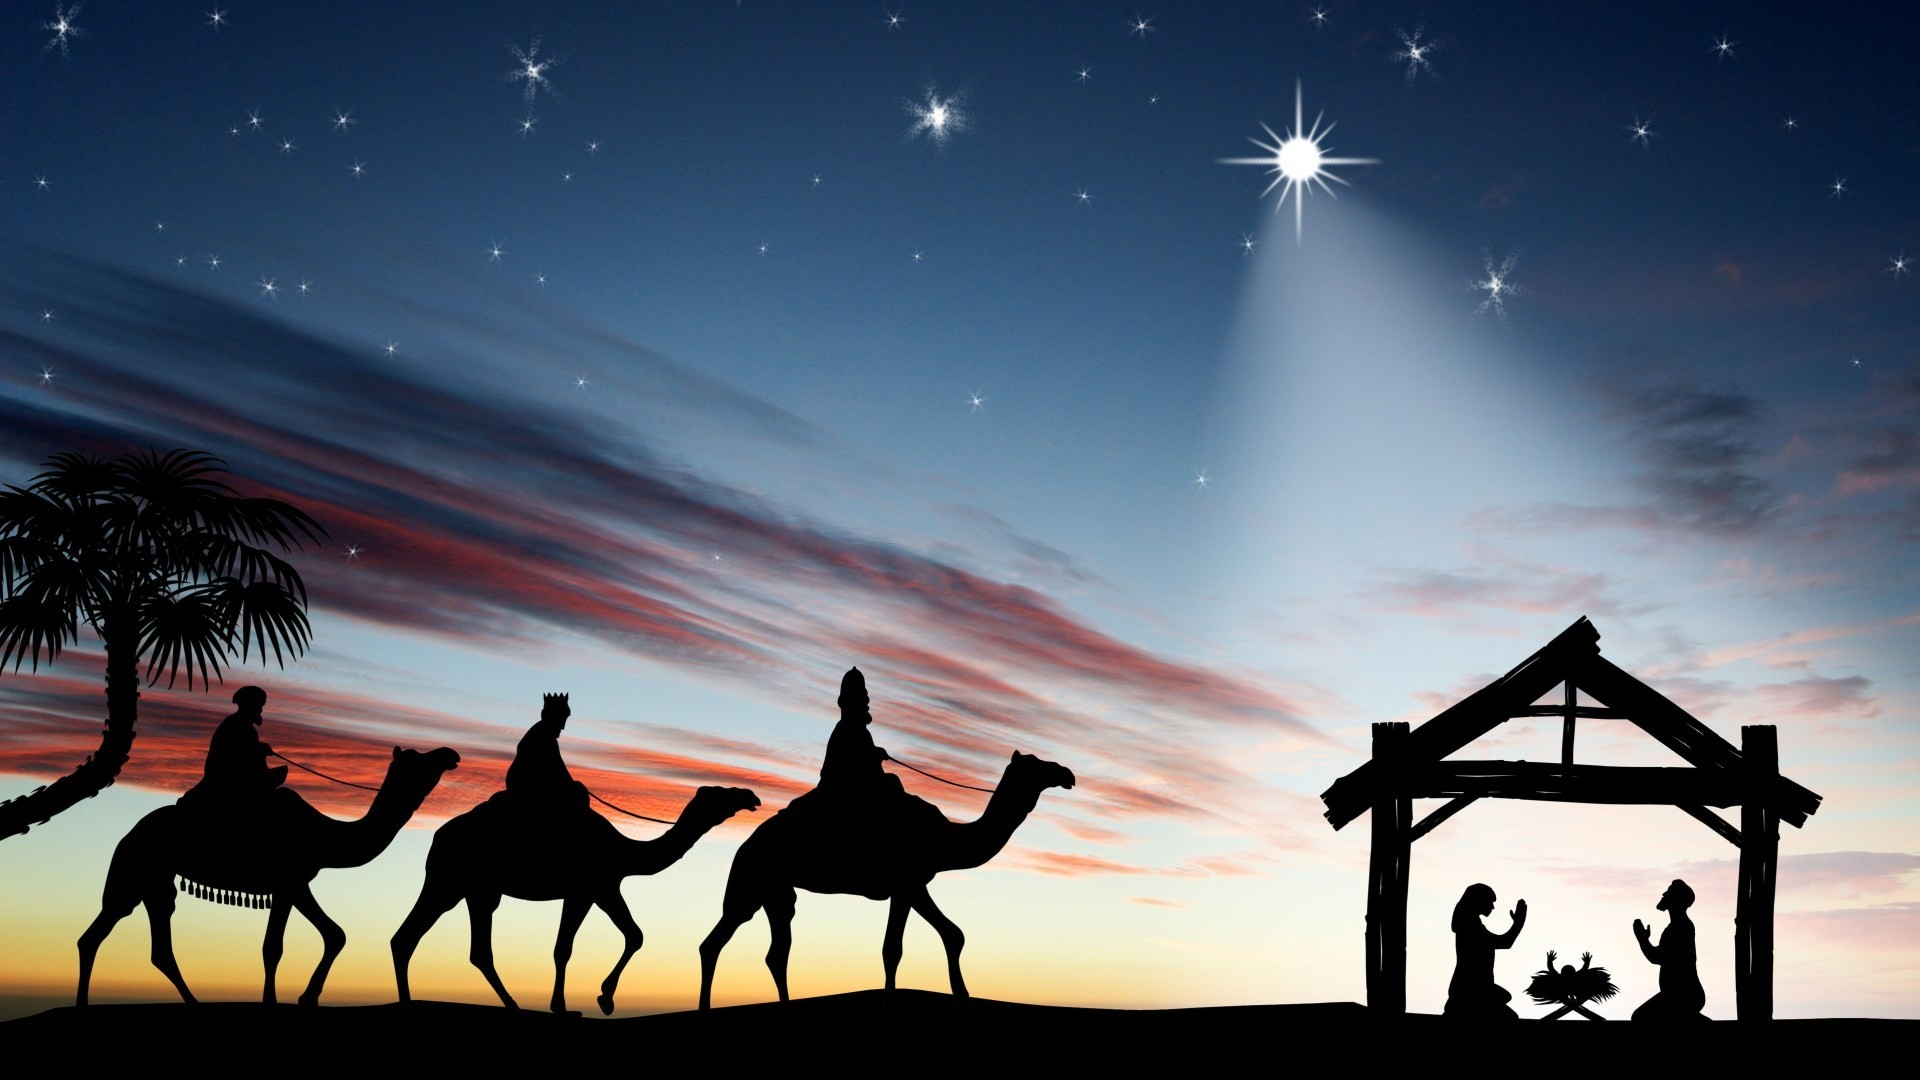 Res: 1920x1080, Mystic Nativity wallpapers ...